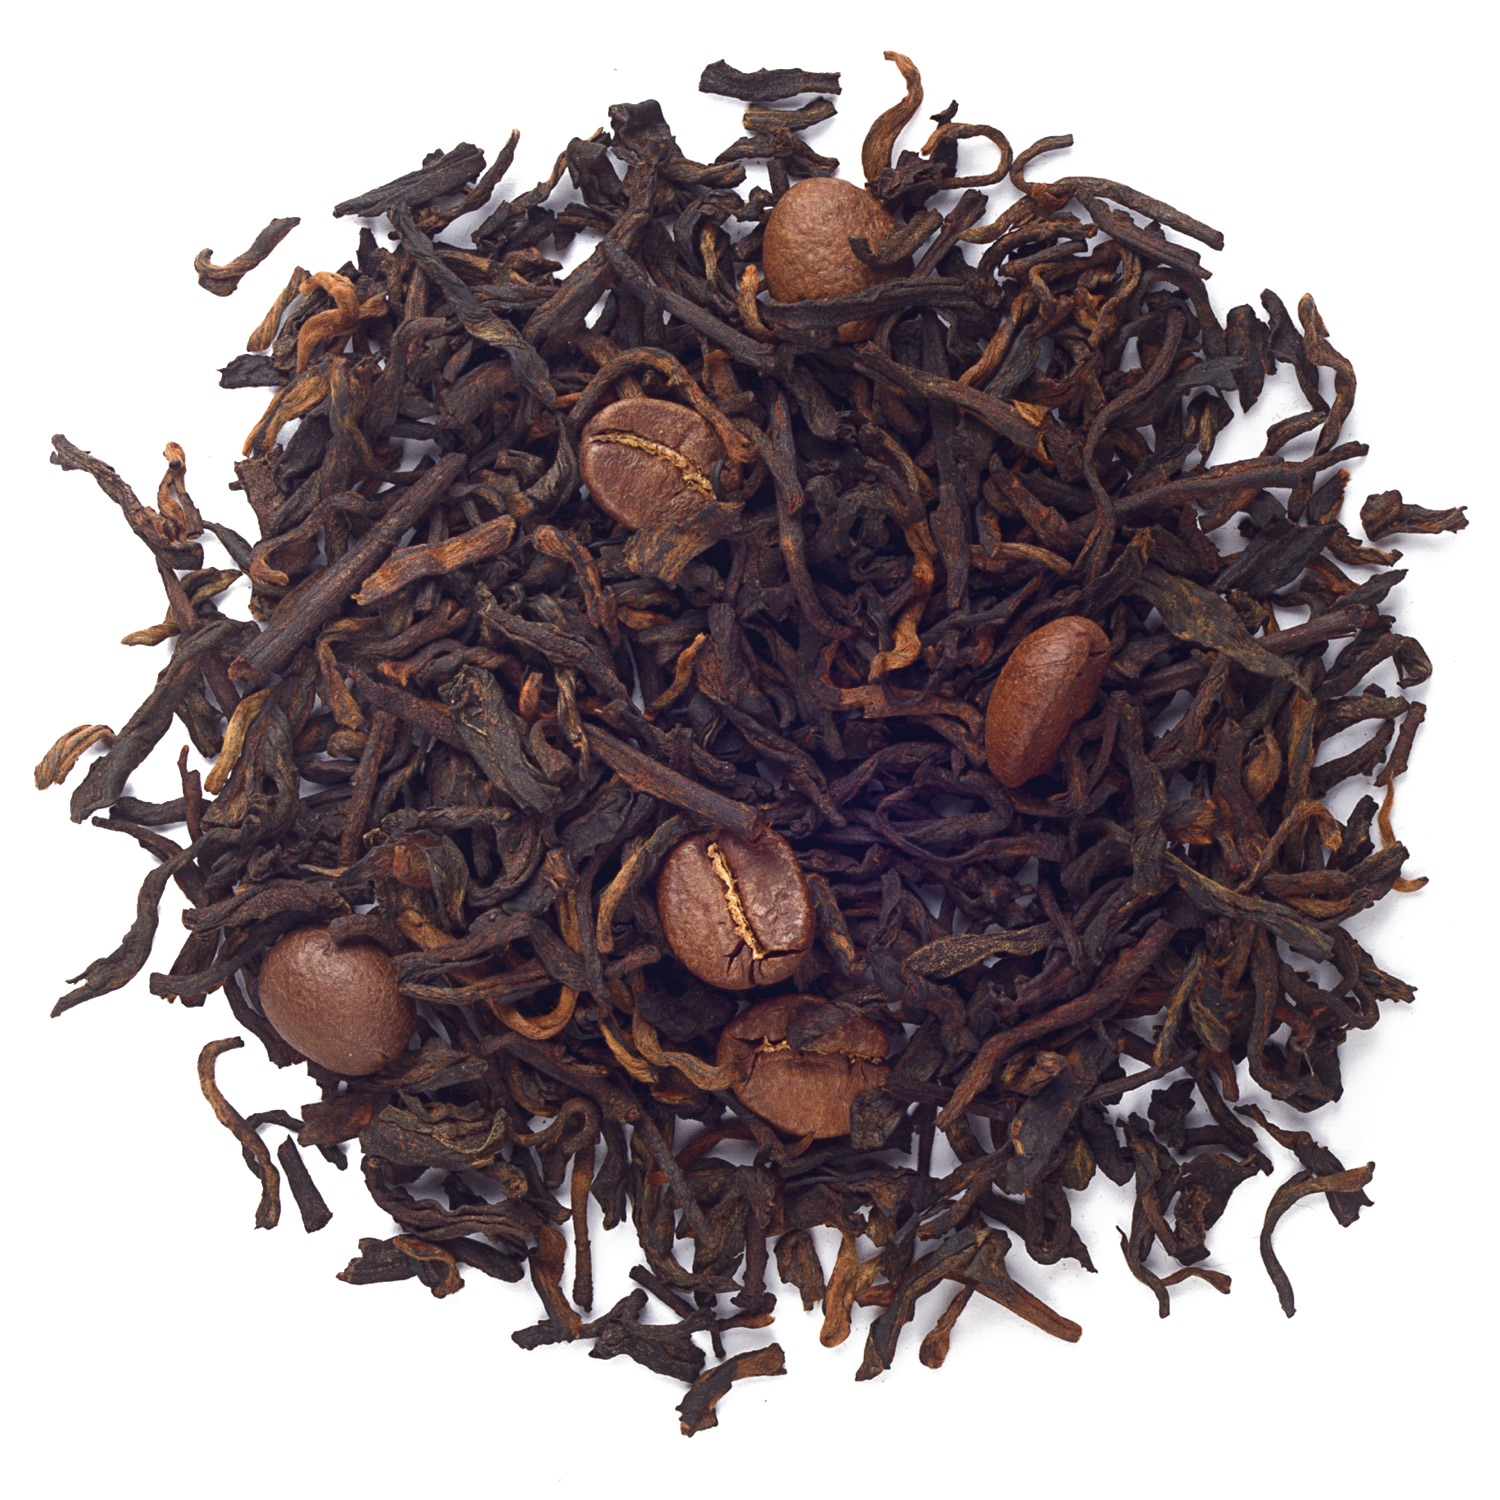 Splash of loose leaf pu'erh tea.